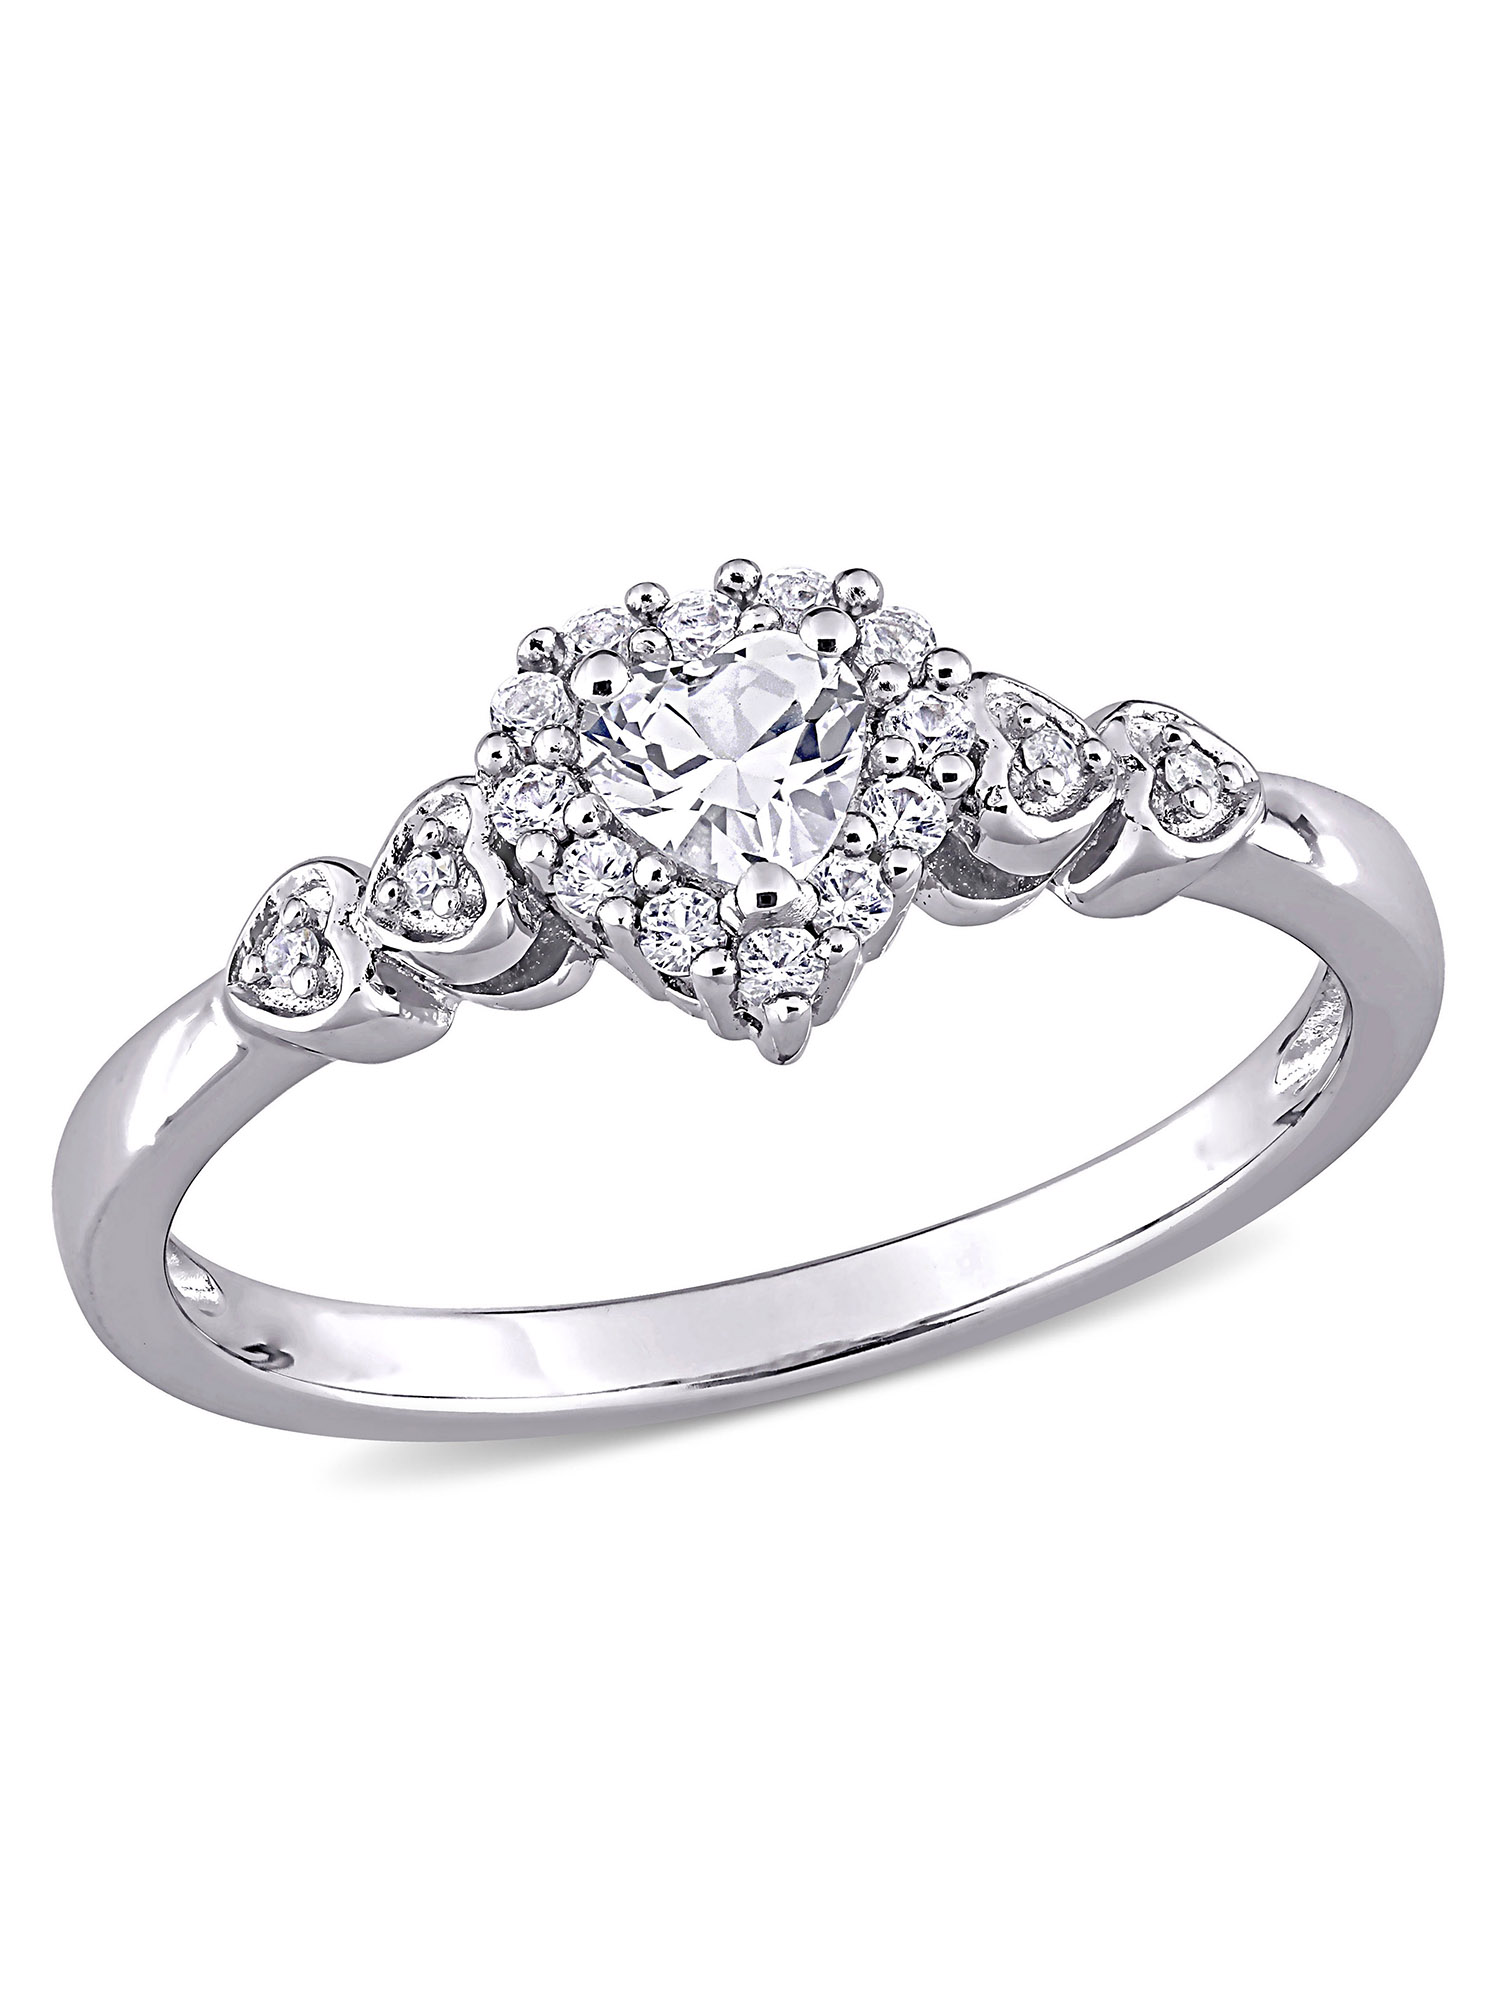 3 Diamond Promise Ring in Sterling Silver Size-10.75 1//20 cttw, G-H,I2-I3